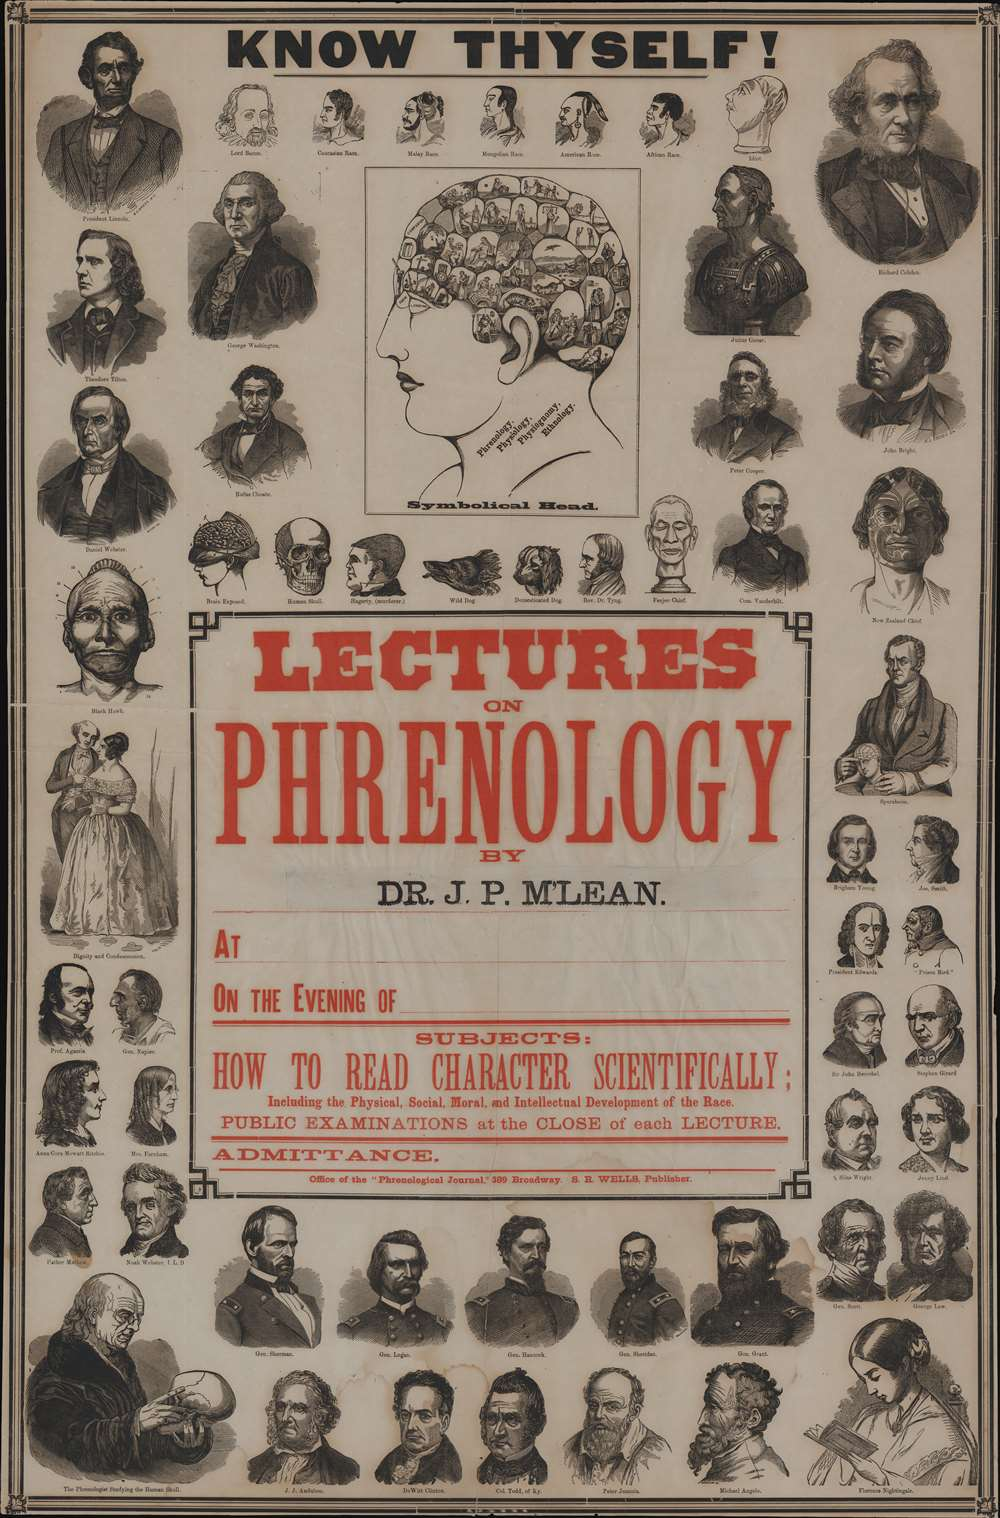 Know Thyself! Lectures on Phrenology by Dr. J. P. M'Lean.